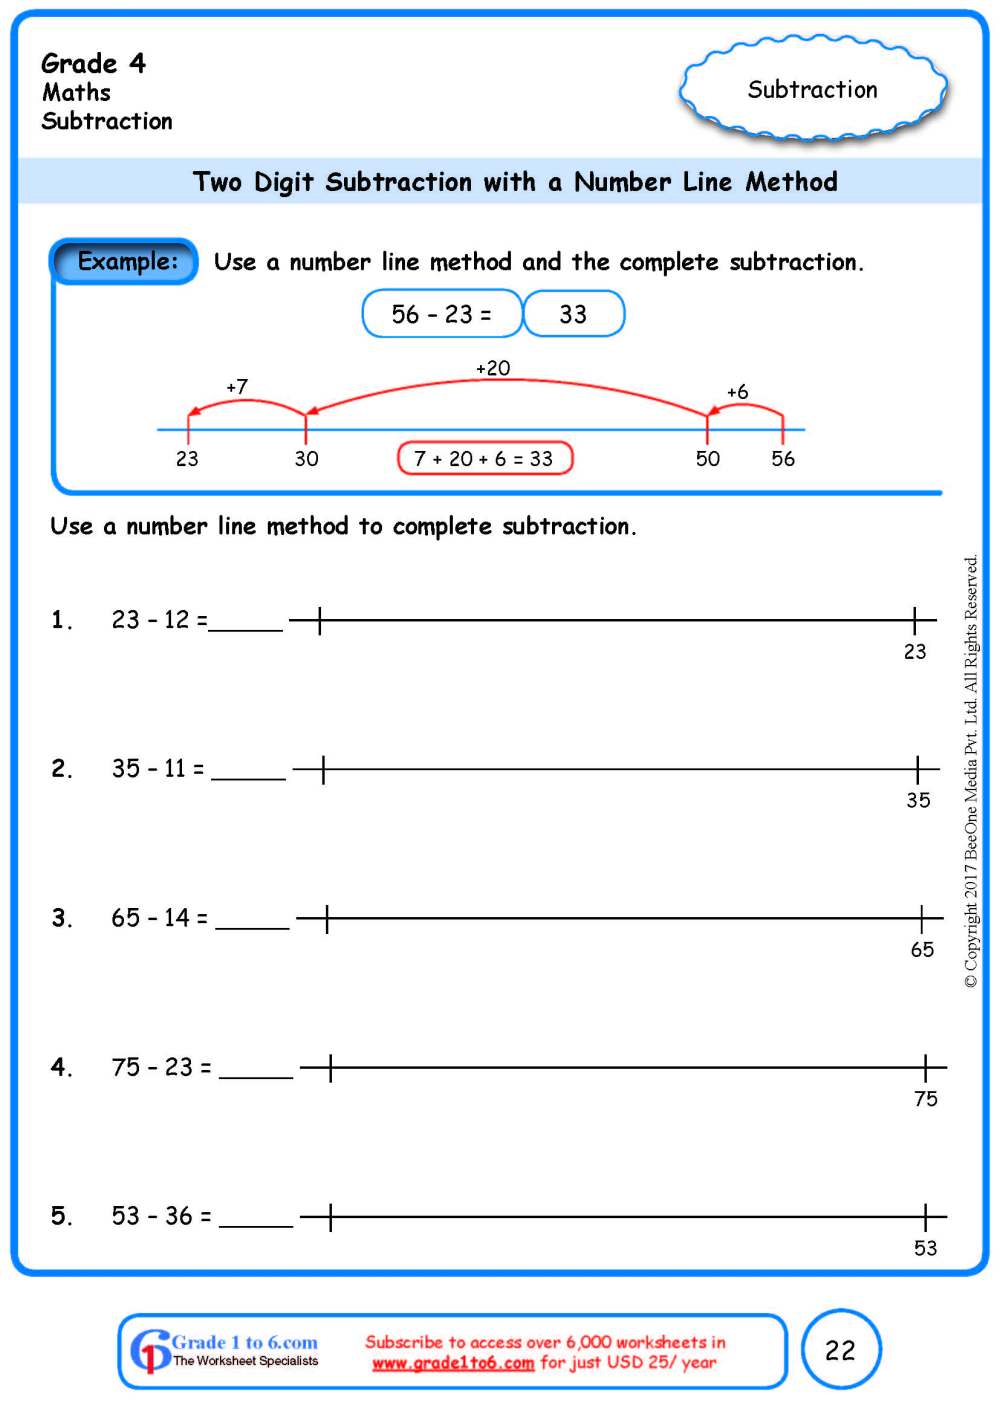 medium resolution of Number Line Subtraction Worksheets www.grade1to6.com